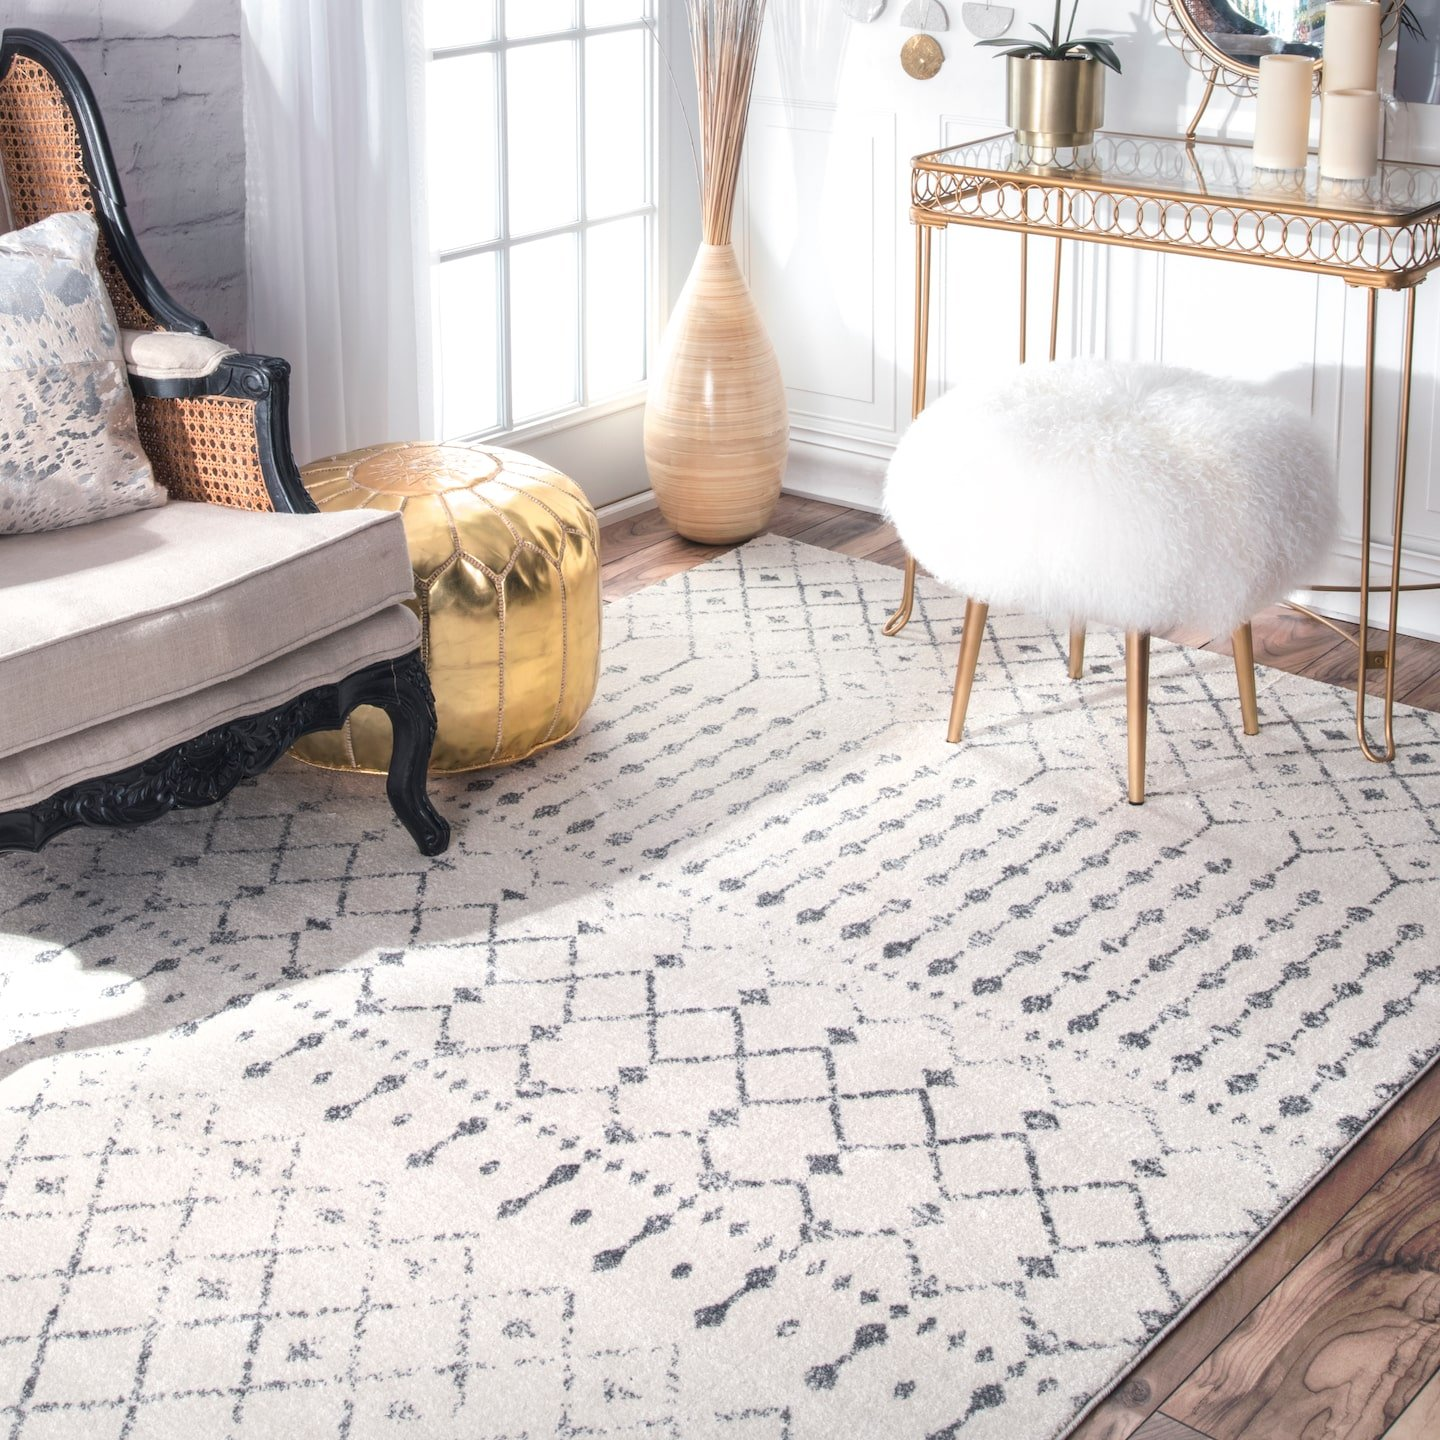 nuLOOM Accent Rugs, 8' X 10' RZBD16A by nuLOOM